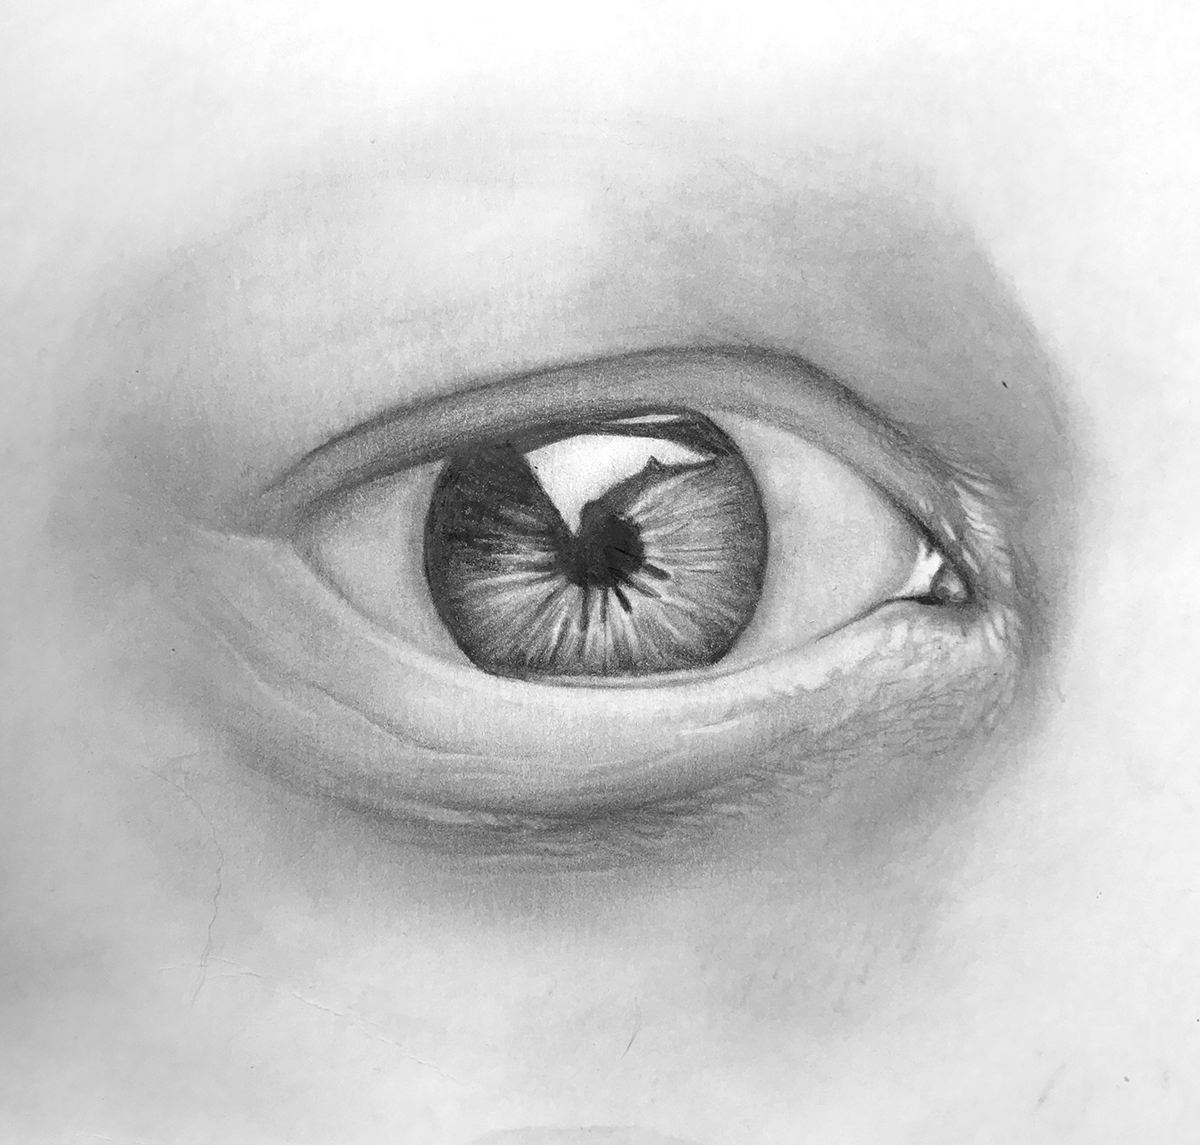 draw-a-realistic-eye-step-09-finer-details-more-shading.jpg